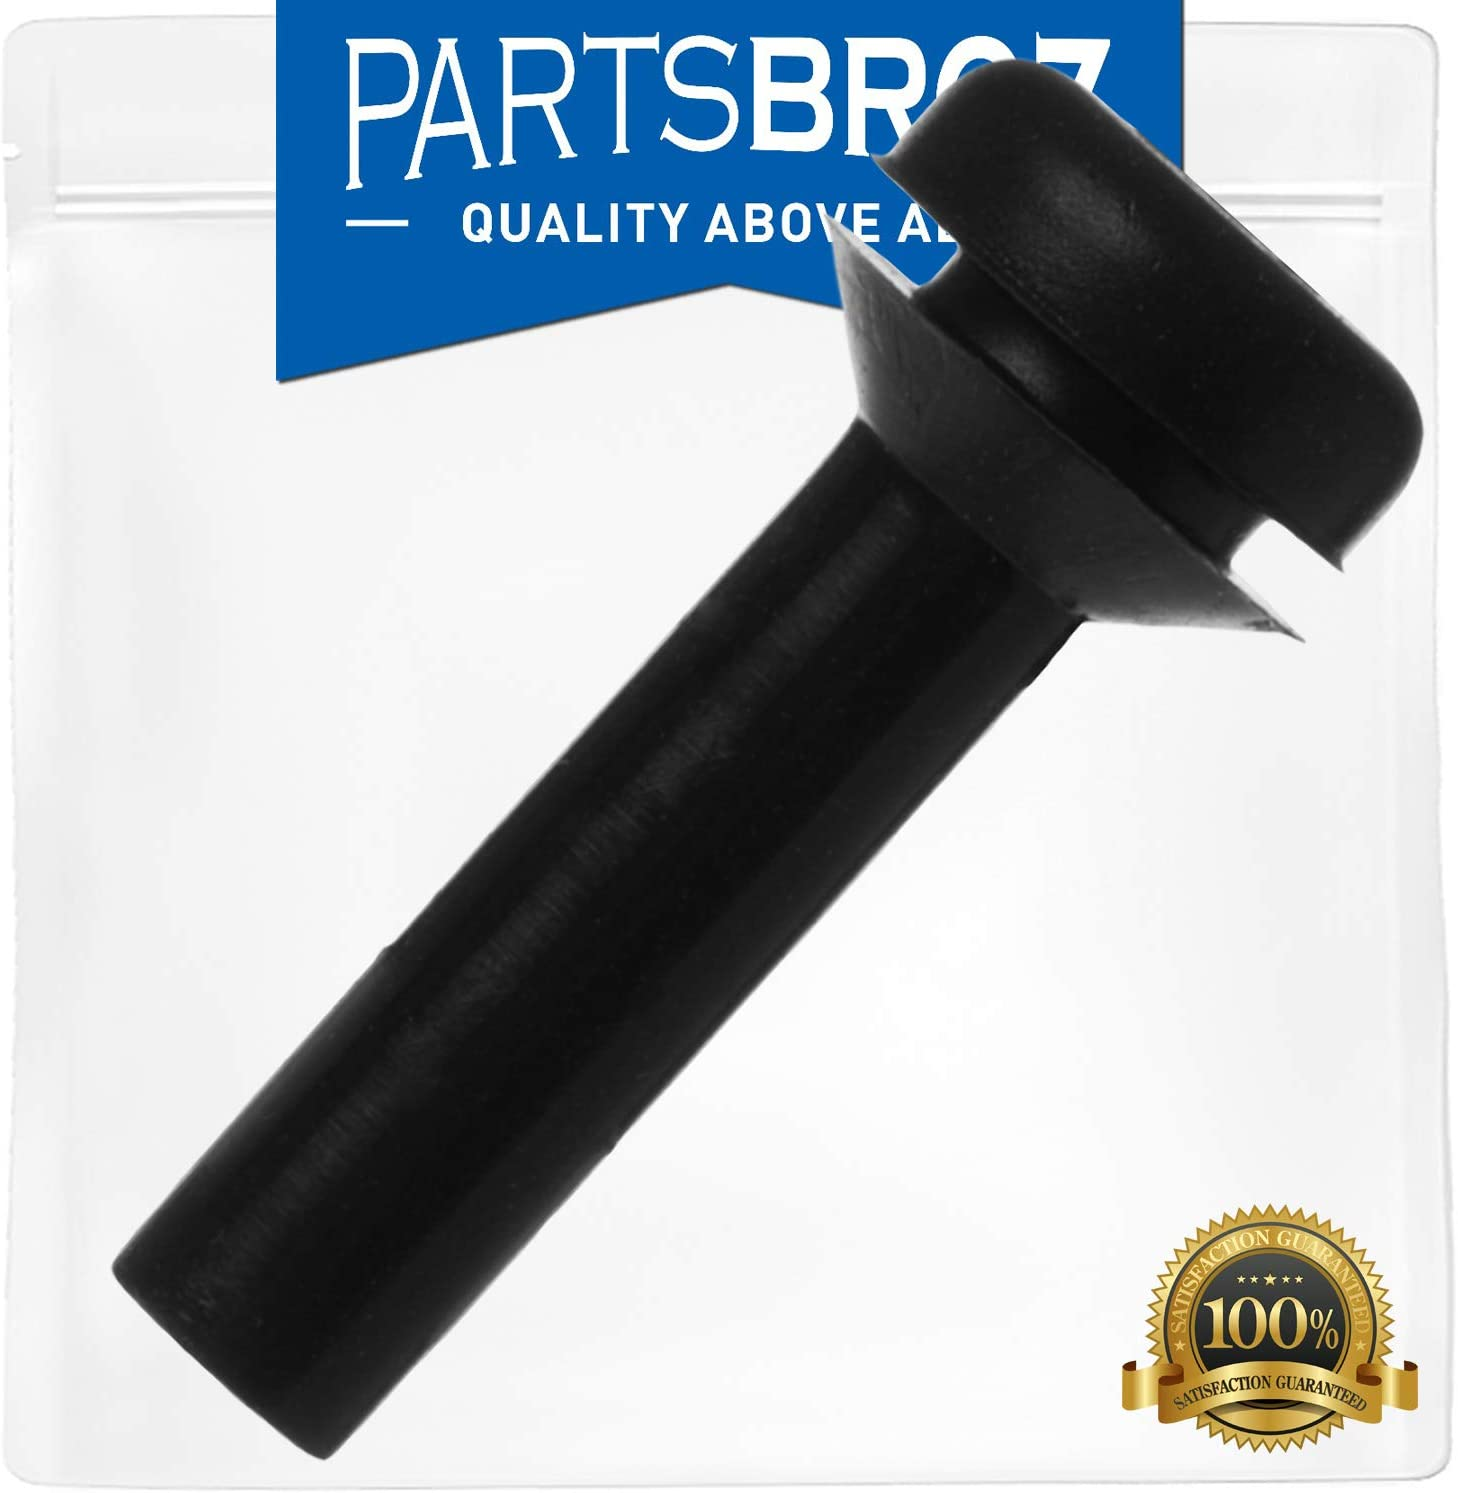 WB02X24790 Bumper by PartsBroz - Compatible with General Electric Ranges - Replaces AP5989801, PS11729077